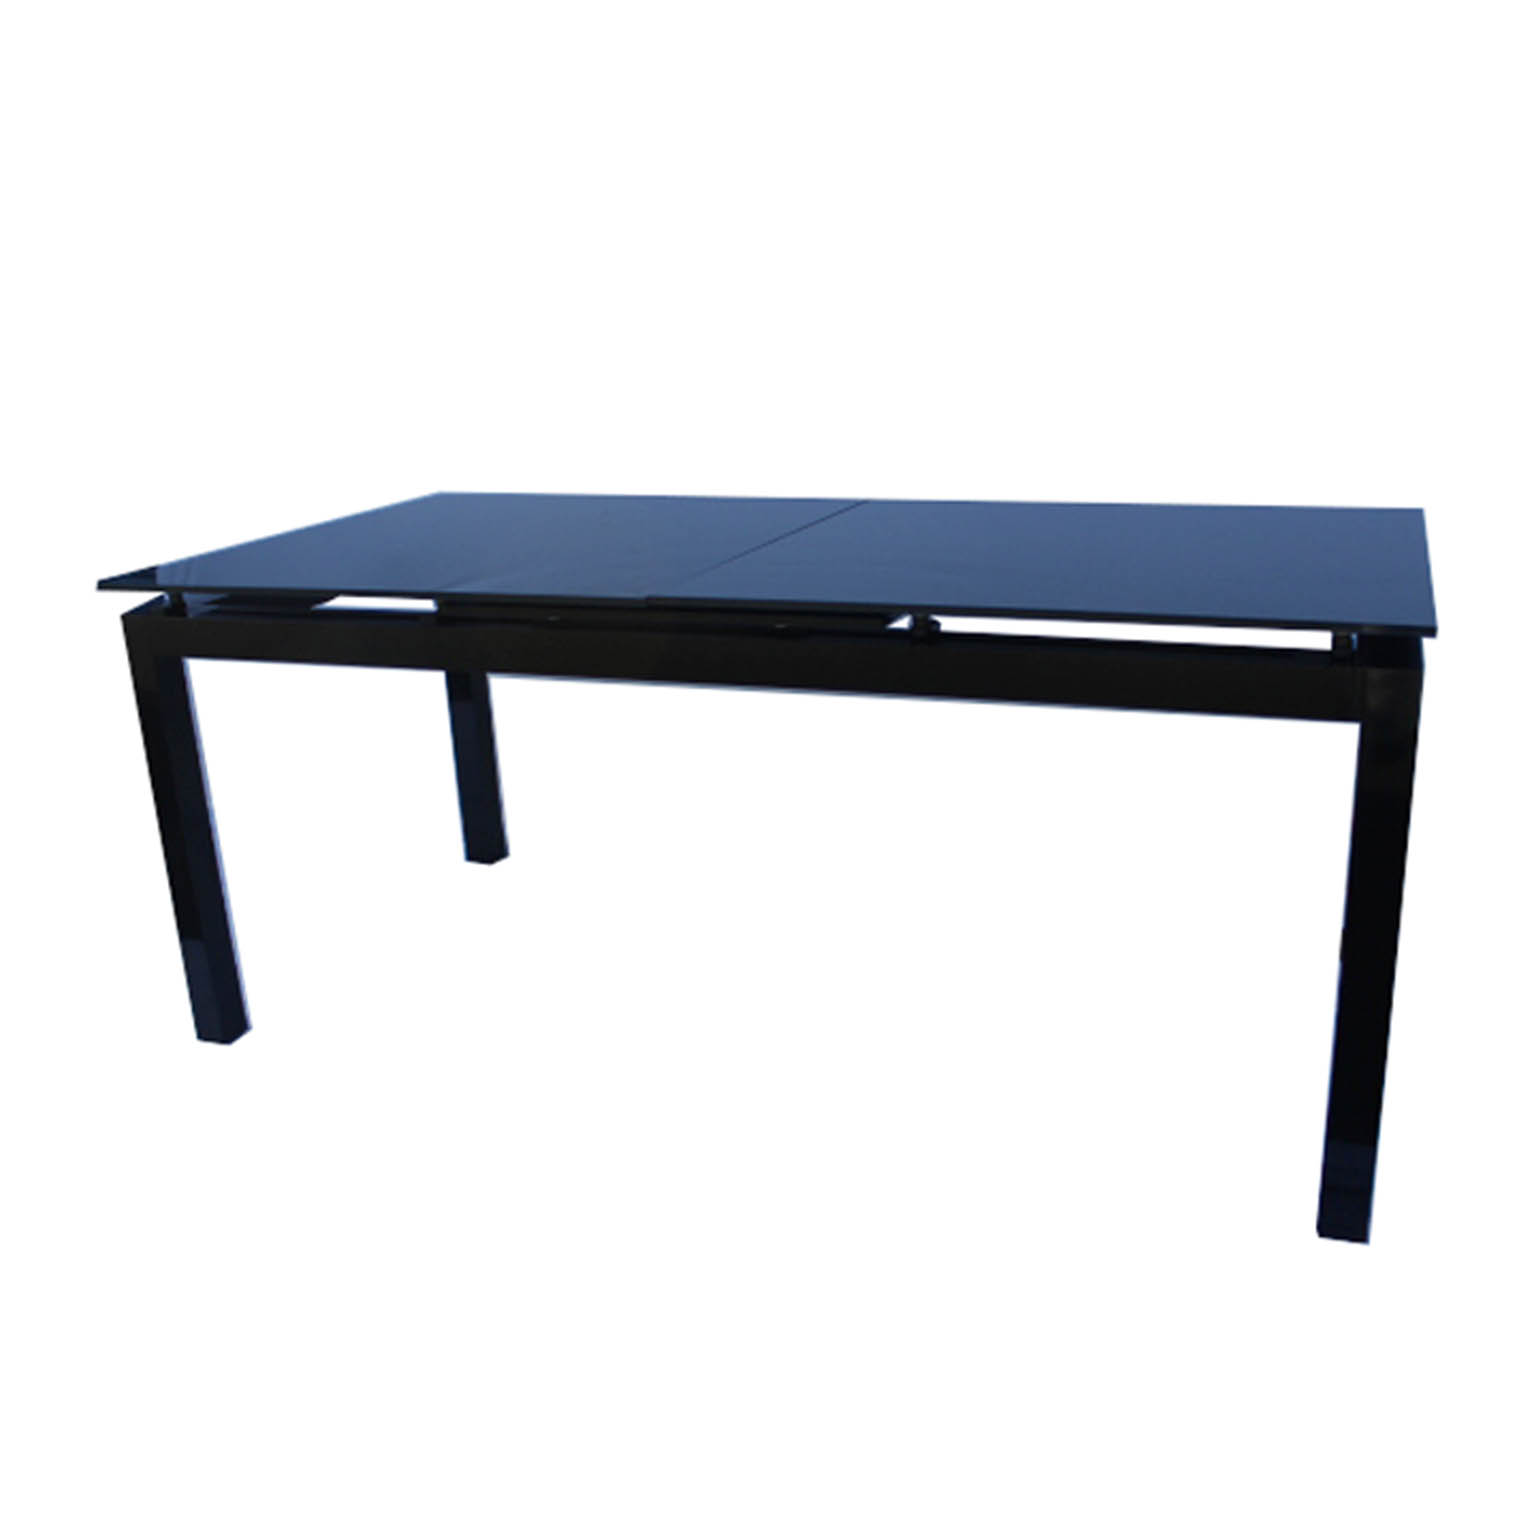 Quot First Glass Quot Dining Table By Ligne Roset Chairish